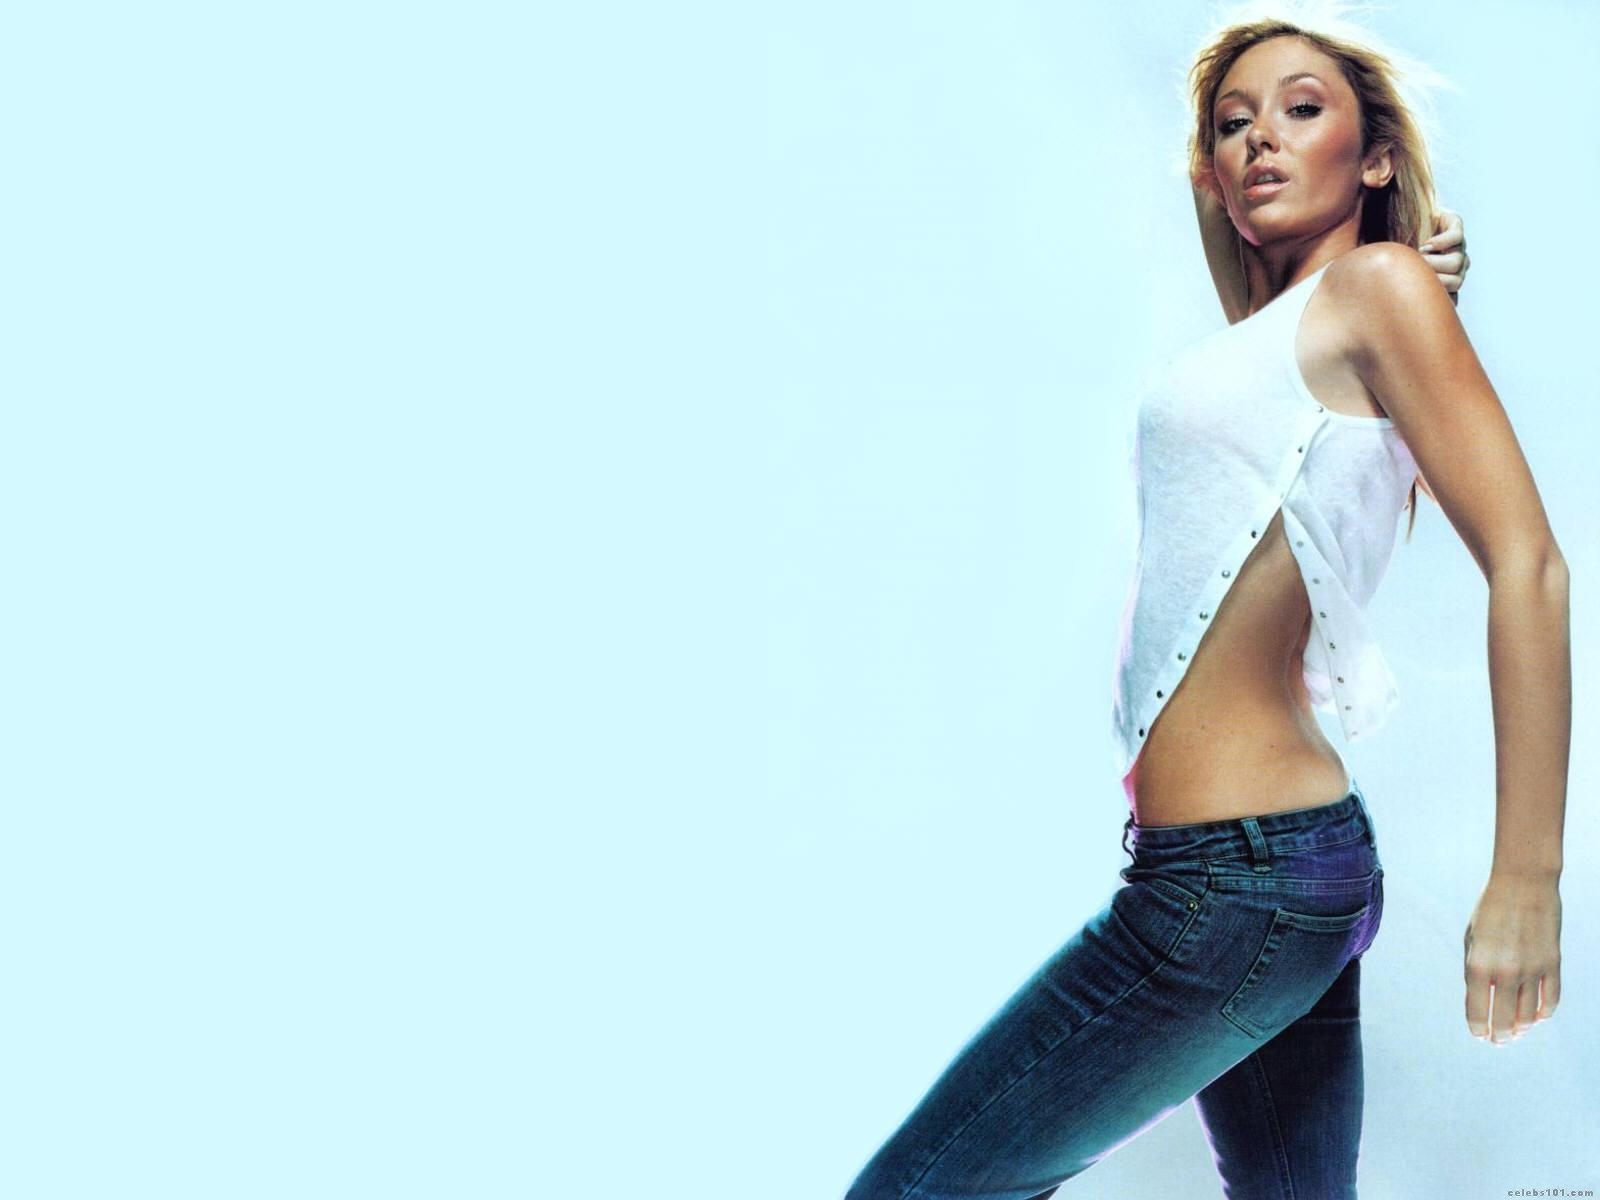 Frost High quality wallpaper size 1600x1200 of Jenny Frost Wallpaper 1600x1200